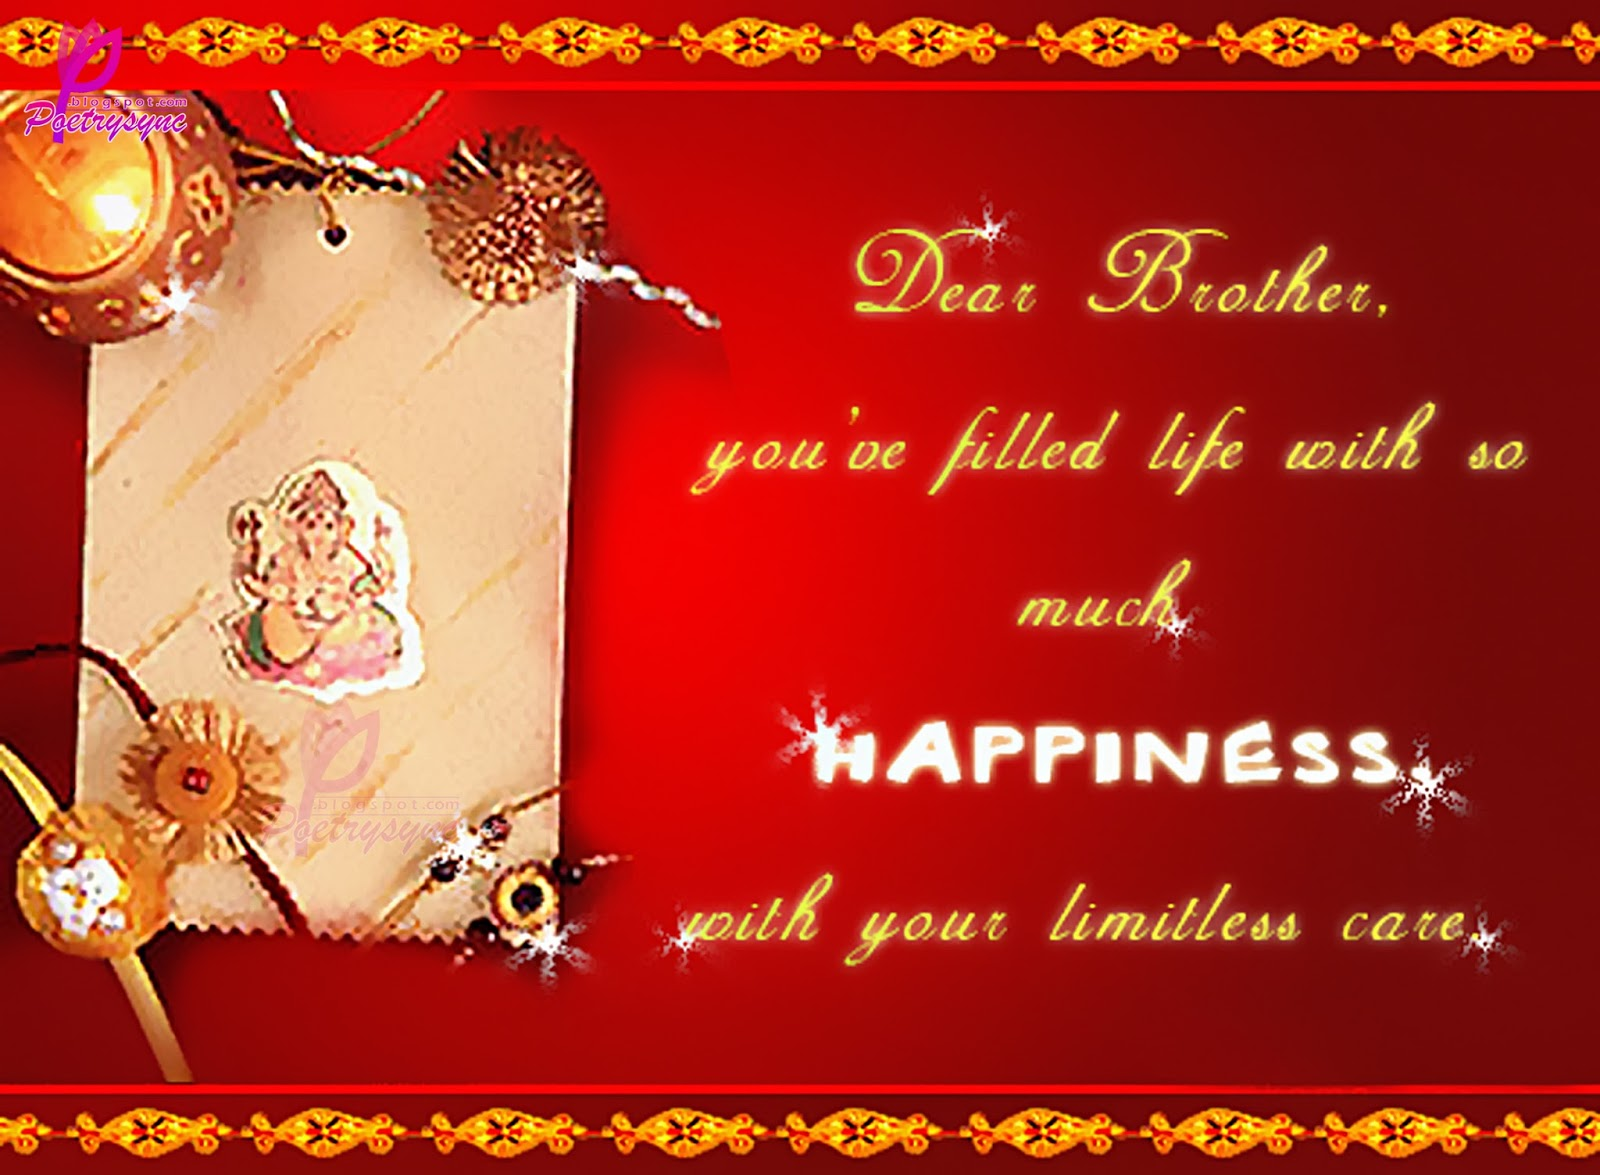 Meaning of raksha bandhan raksha bandhan wishes greeting cards check the latest images of raksha bandhan wishes greeting cards kristyandbryce Image collections